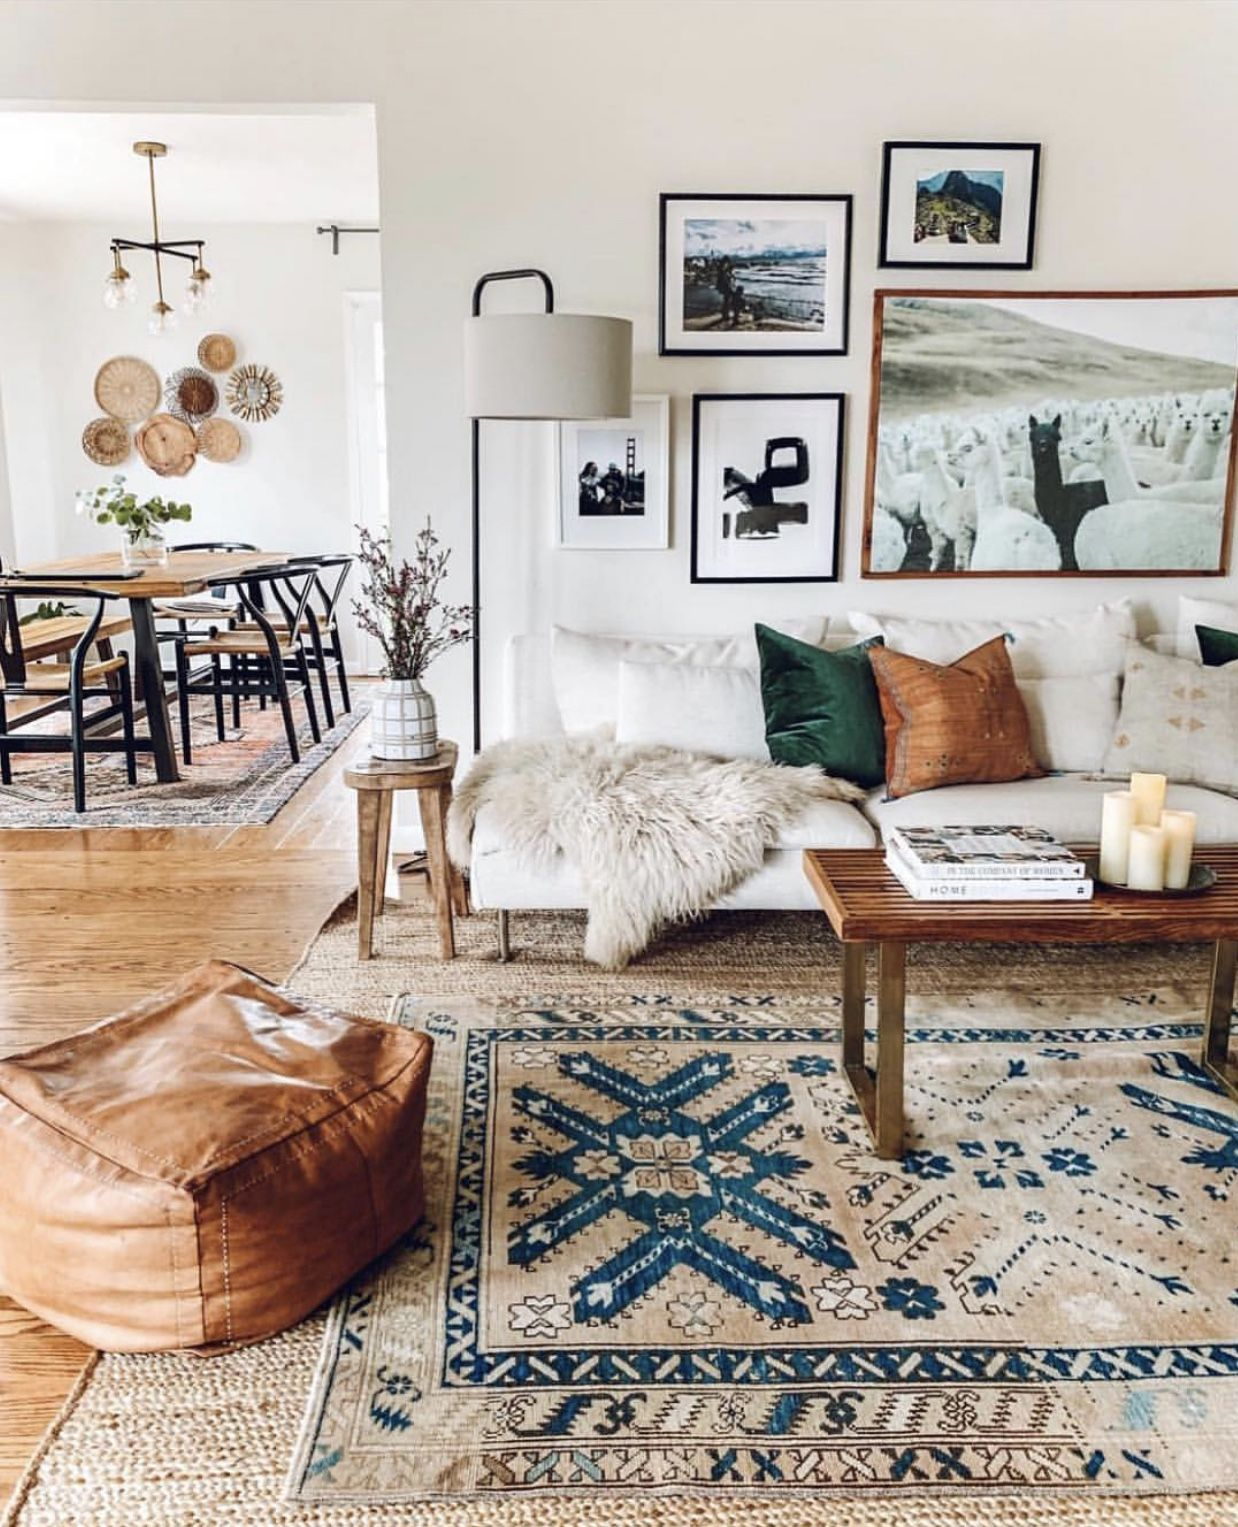 Pin by Courtney Huffman on Inside | Modern boho living ...